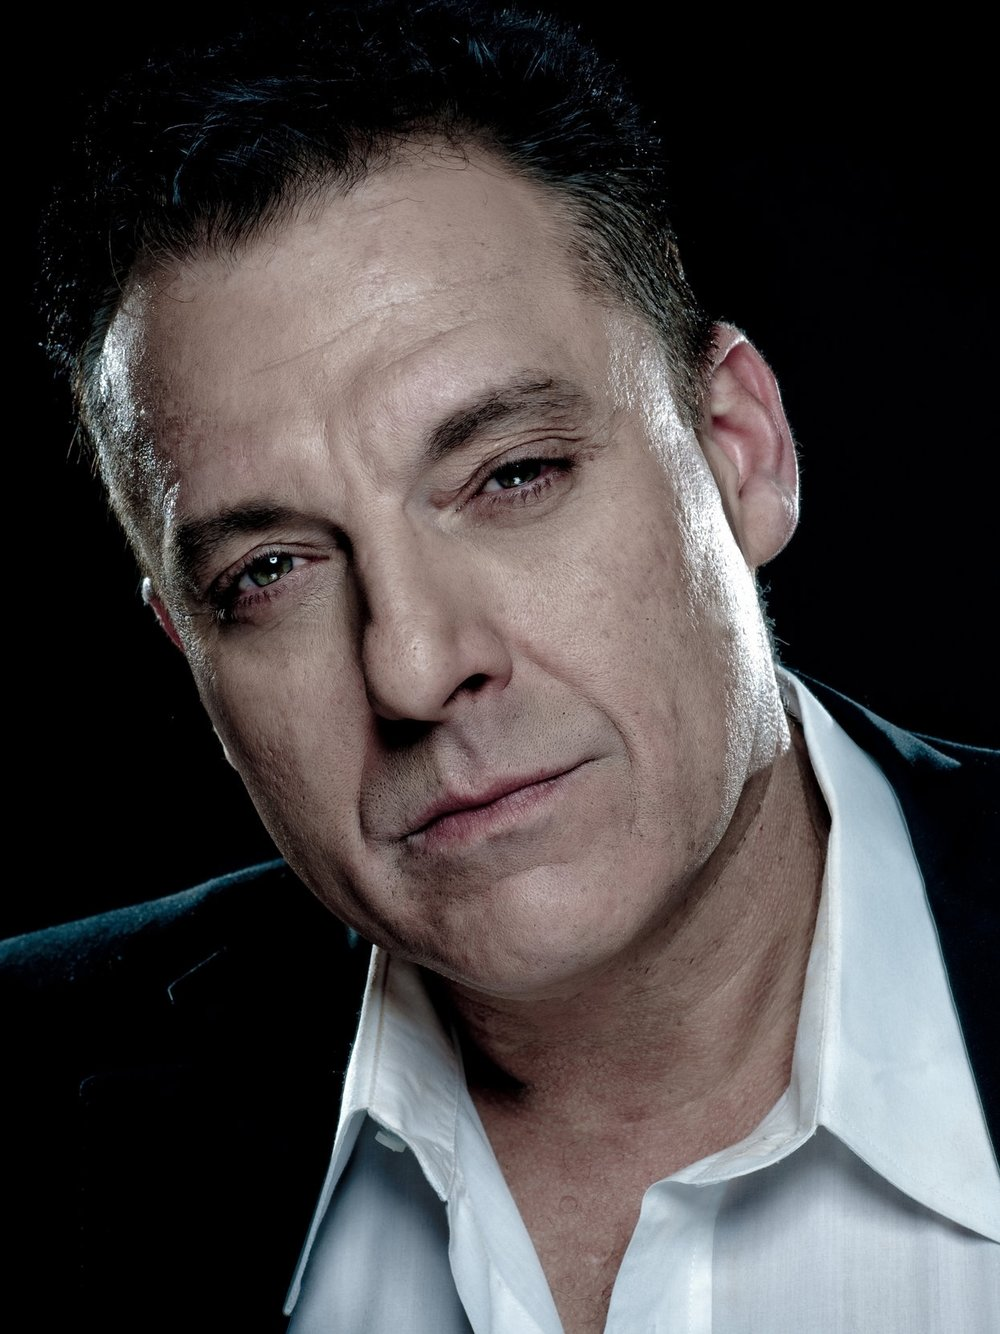 Tom Sizemore as Detective Michaels